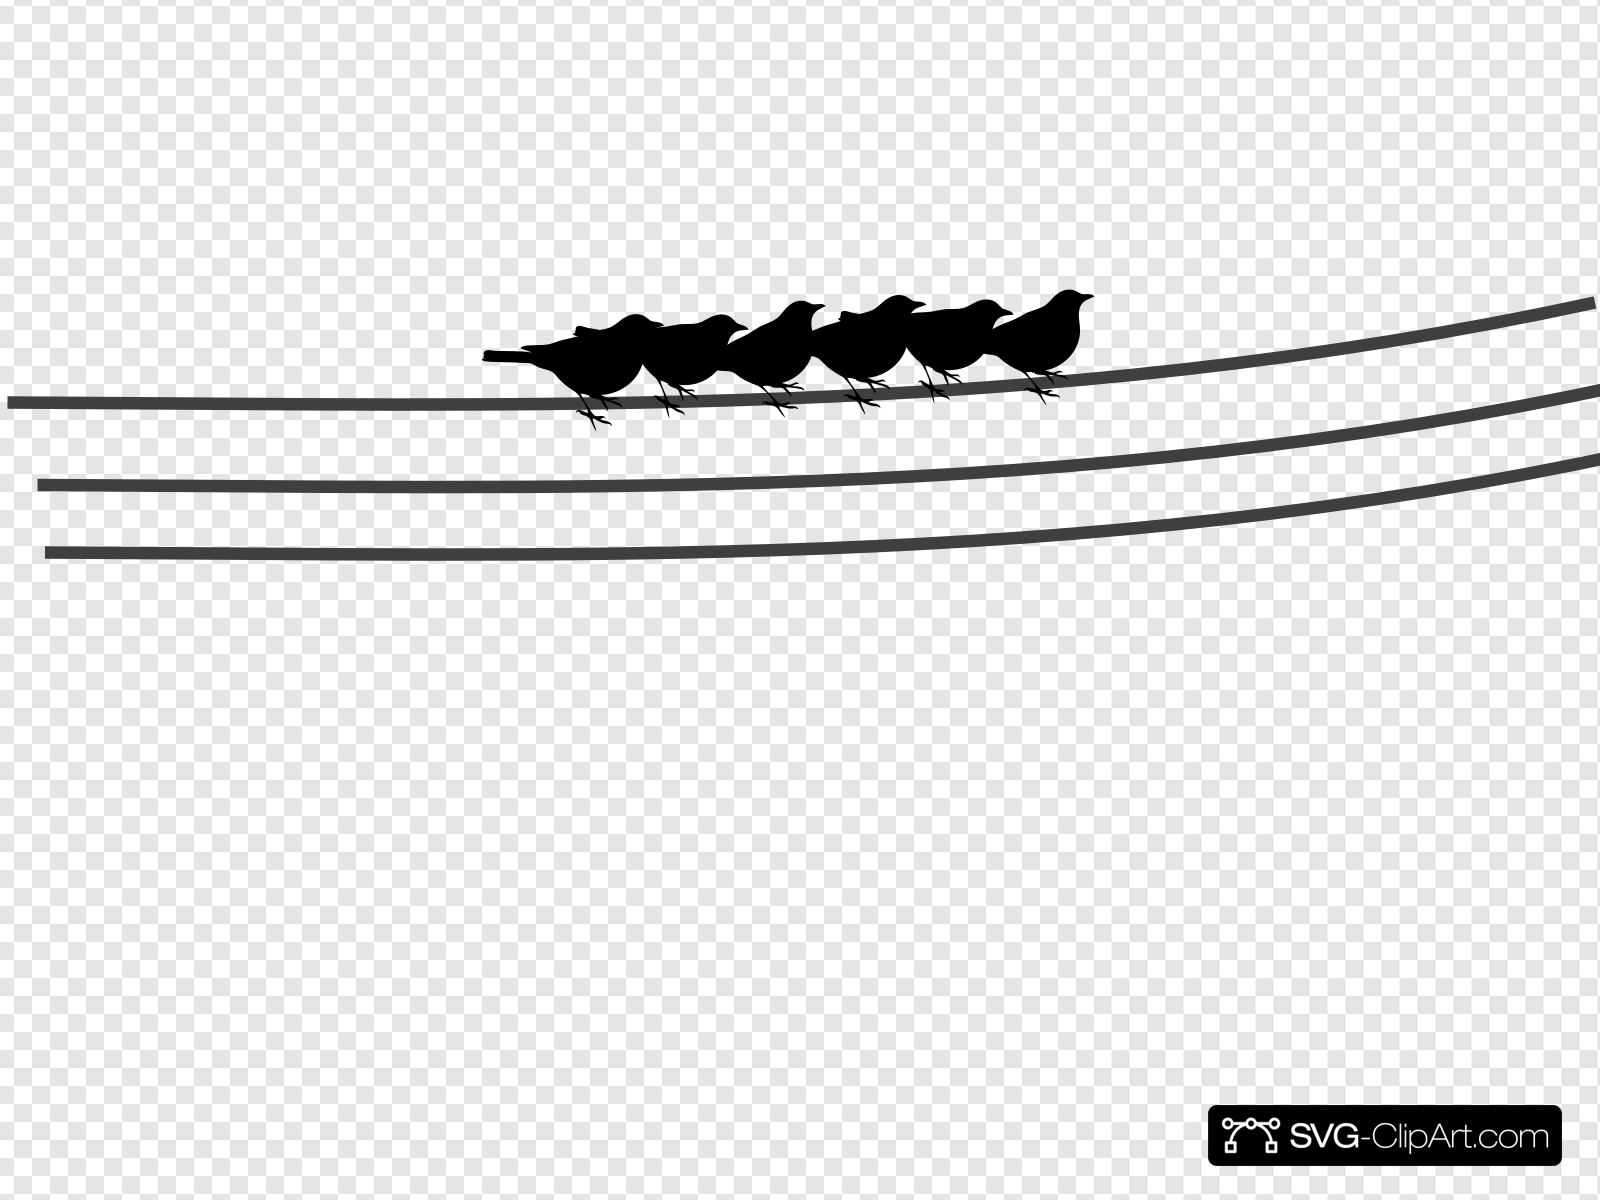 Birds On Power Lines Clip art, Icon and SVG.